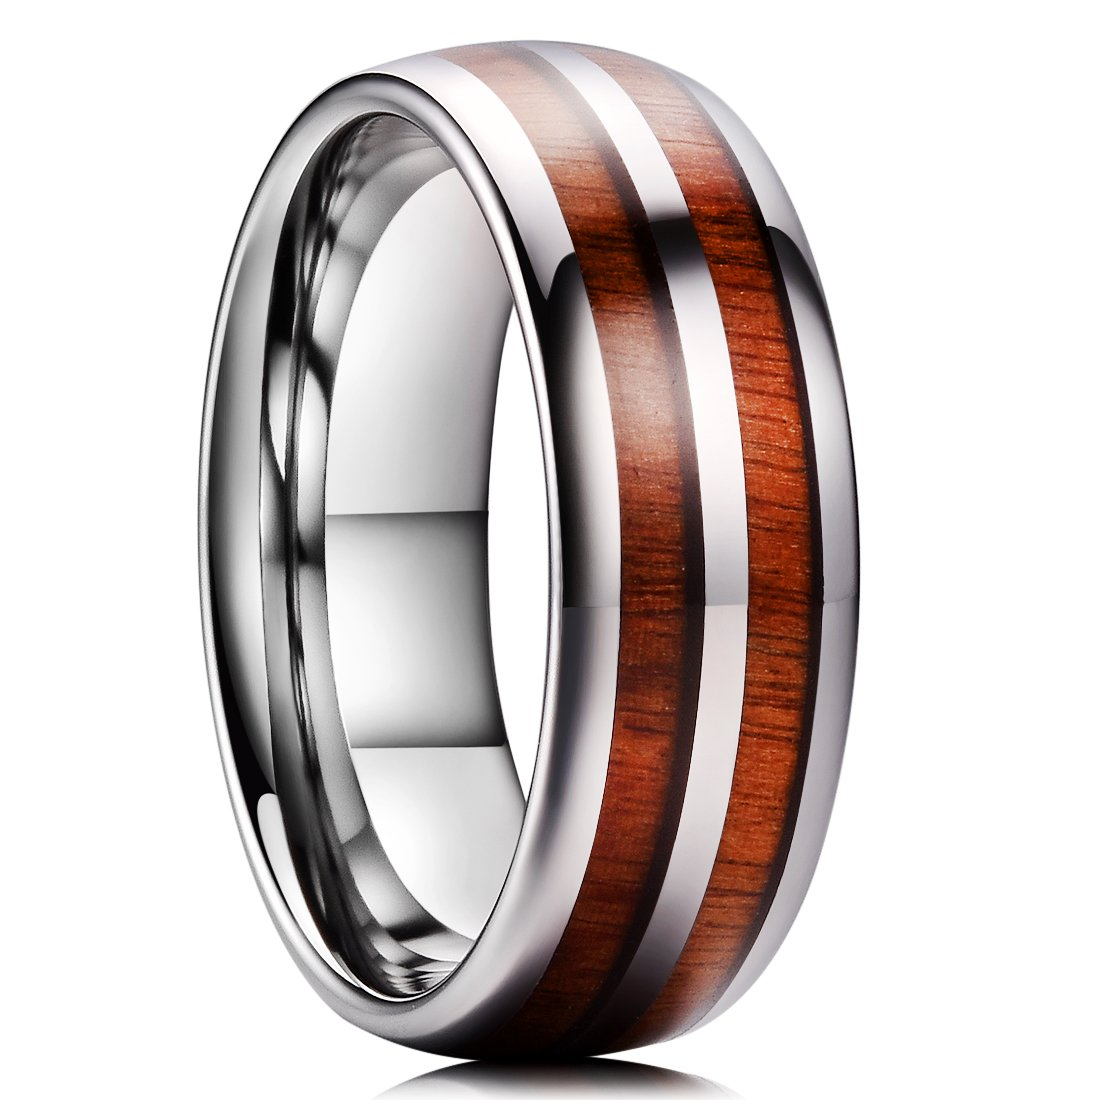 King Will Nature 8mm Mens Domed Double Rosewood Wood Inlay Tungsten Carbide Ring Wedding Band Polished Finish Comfort Fit 7.5